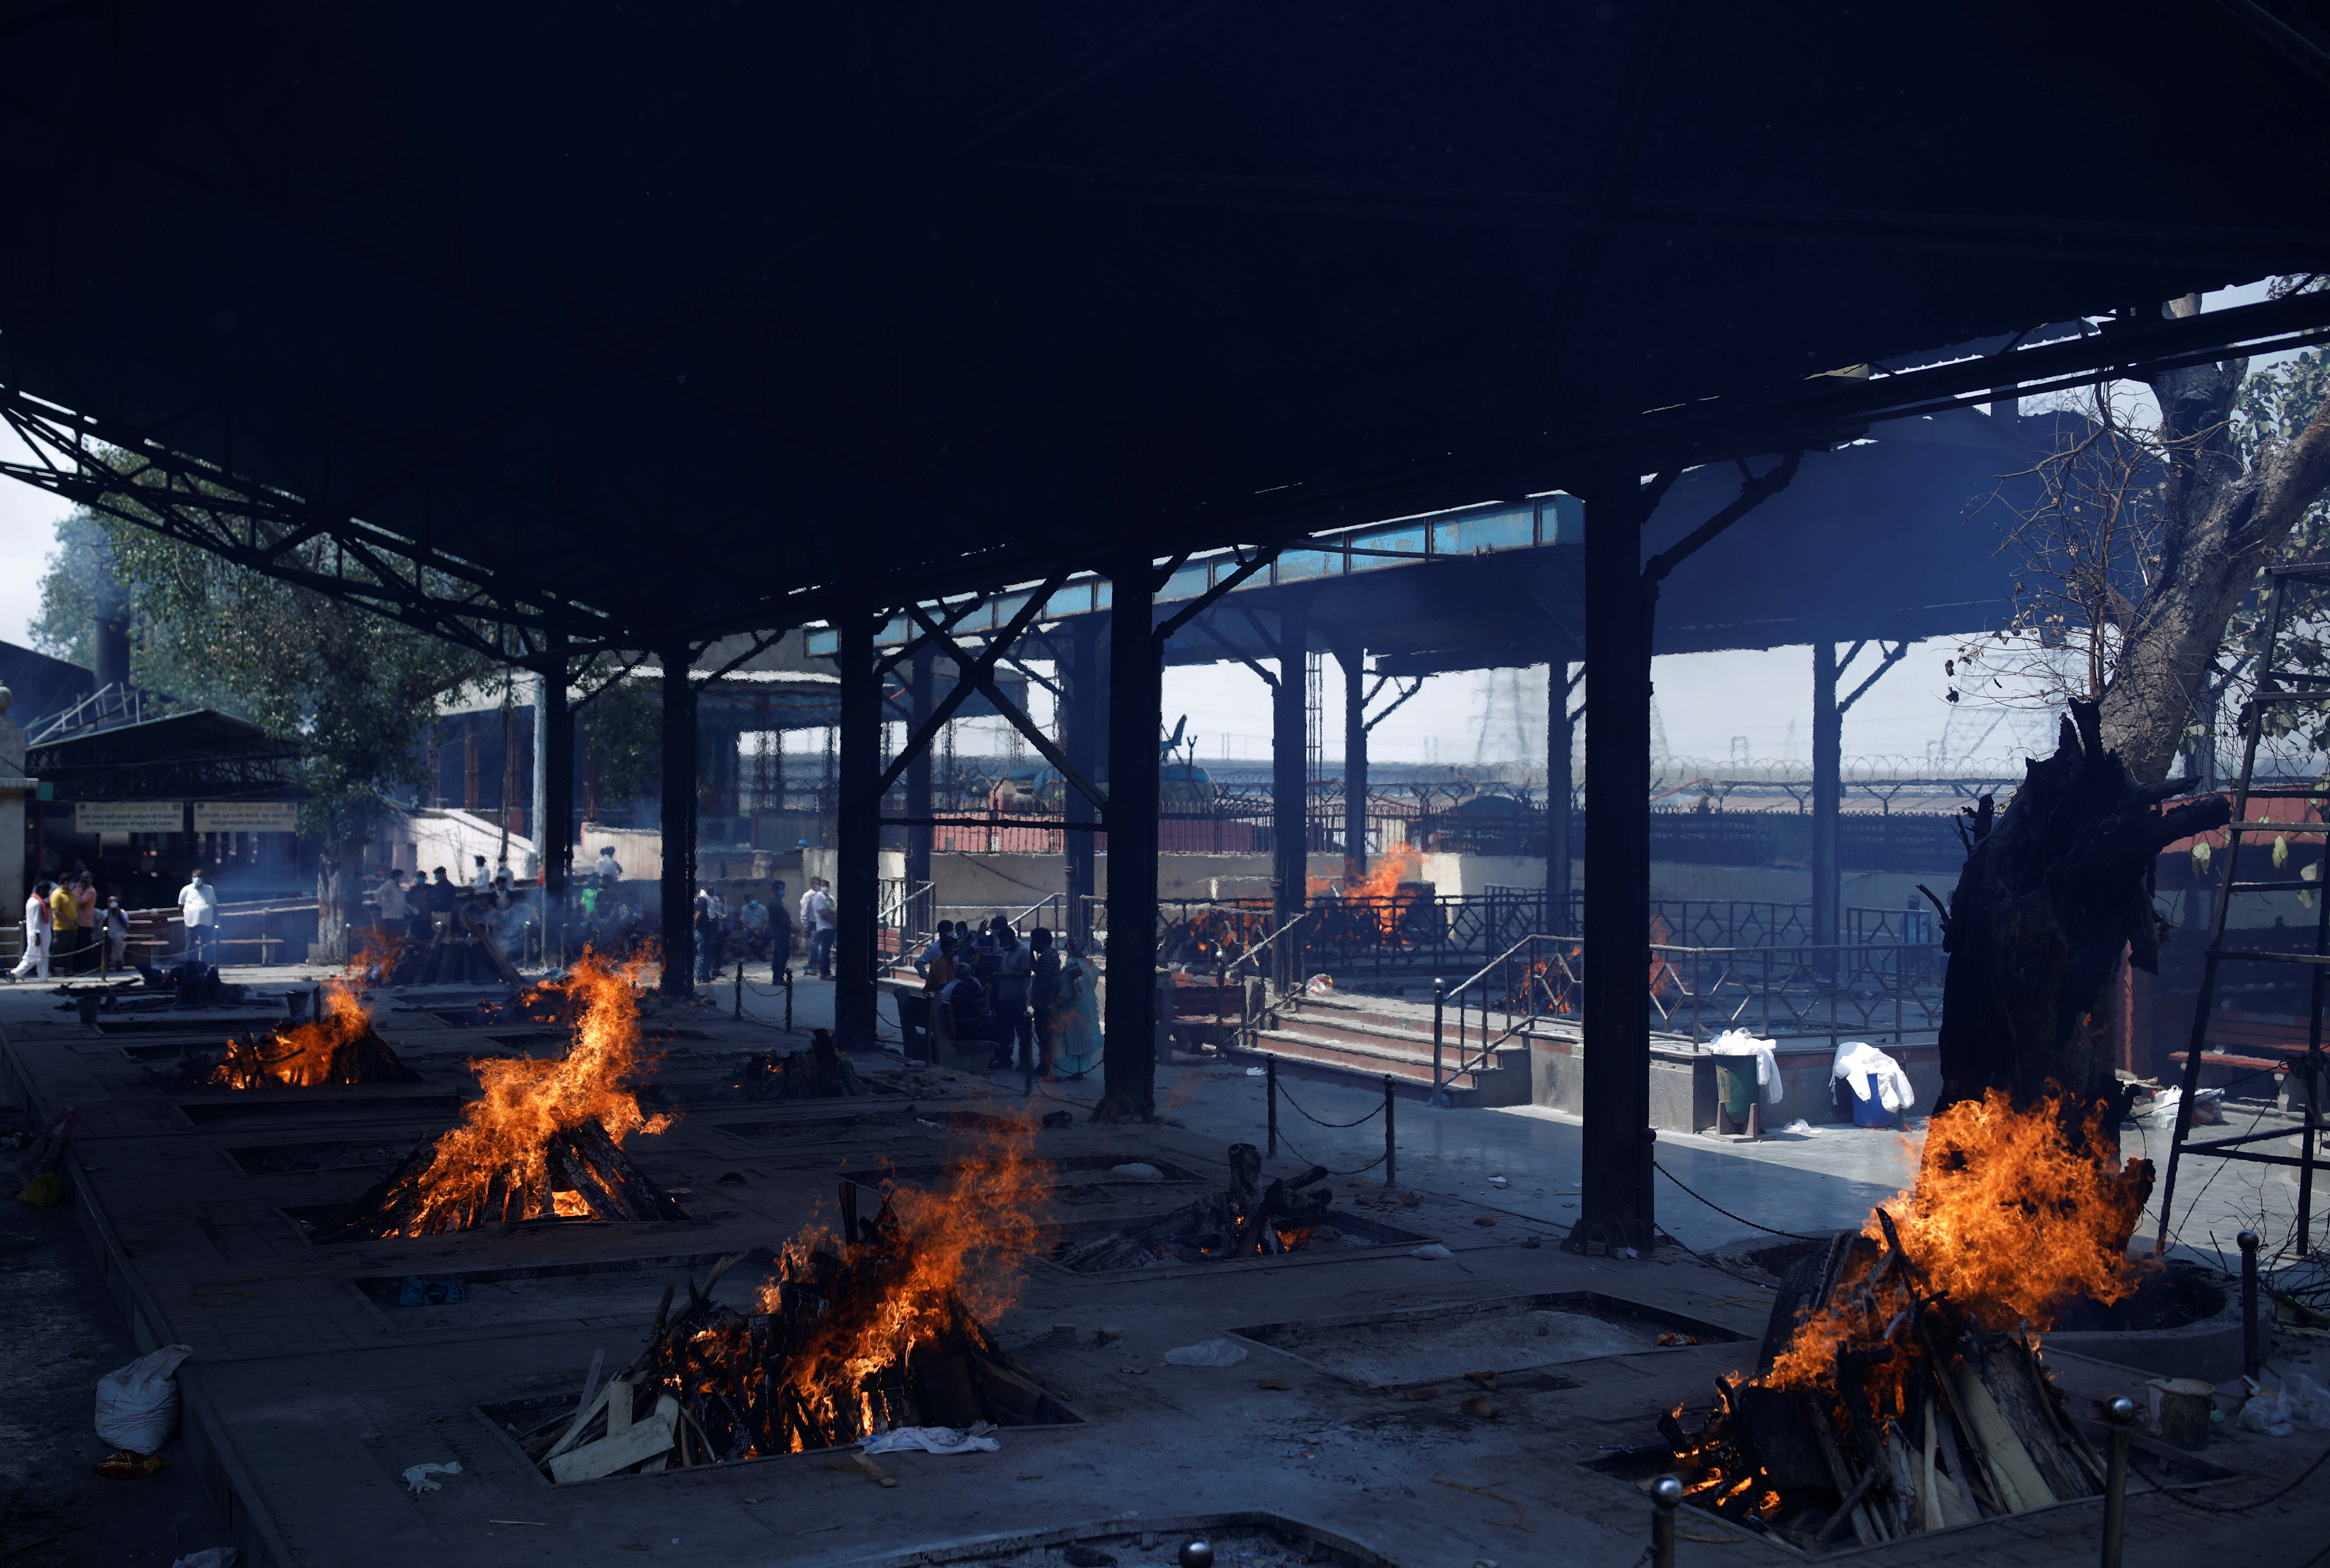 Funeral pyres of people, who died from the coronavirus disease (COVID-19), are pictured at a crematorium in New Delhi, India April 21, 2021. REUTERS/Adnan Abidi